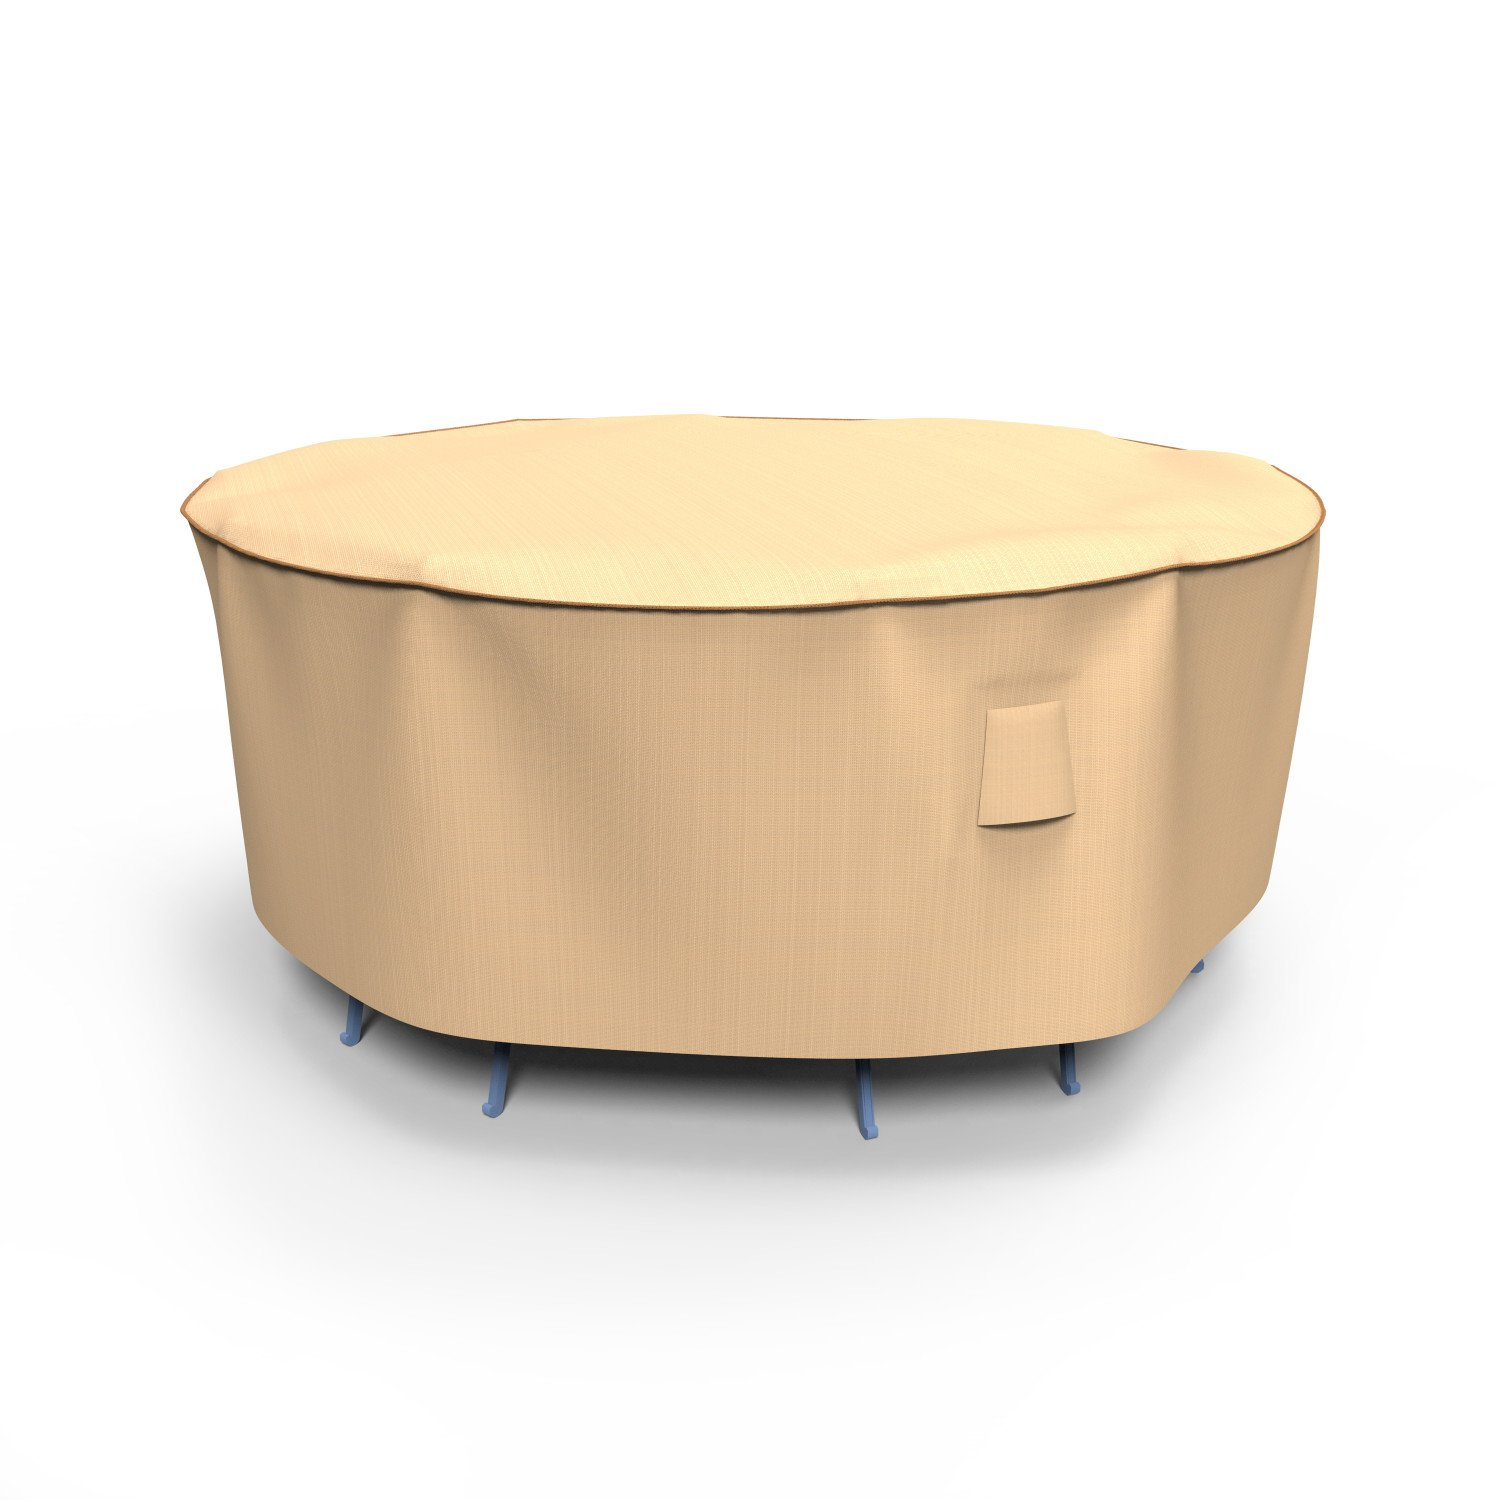 Budge Chelsea Round Patio Table and Chairs Combo Cover, Small (Tan)